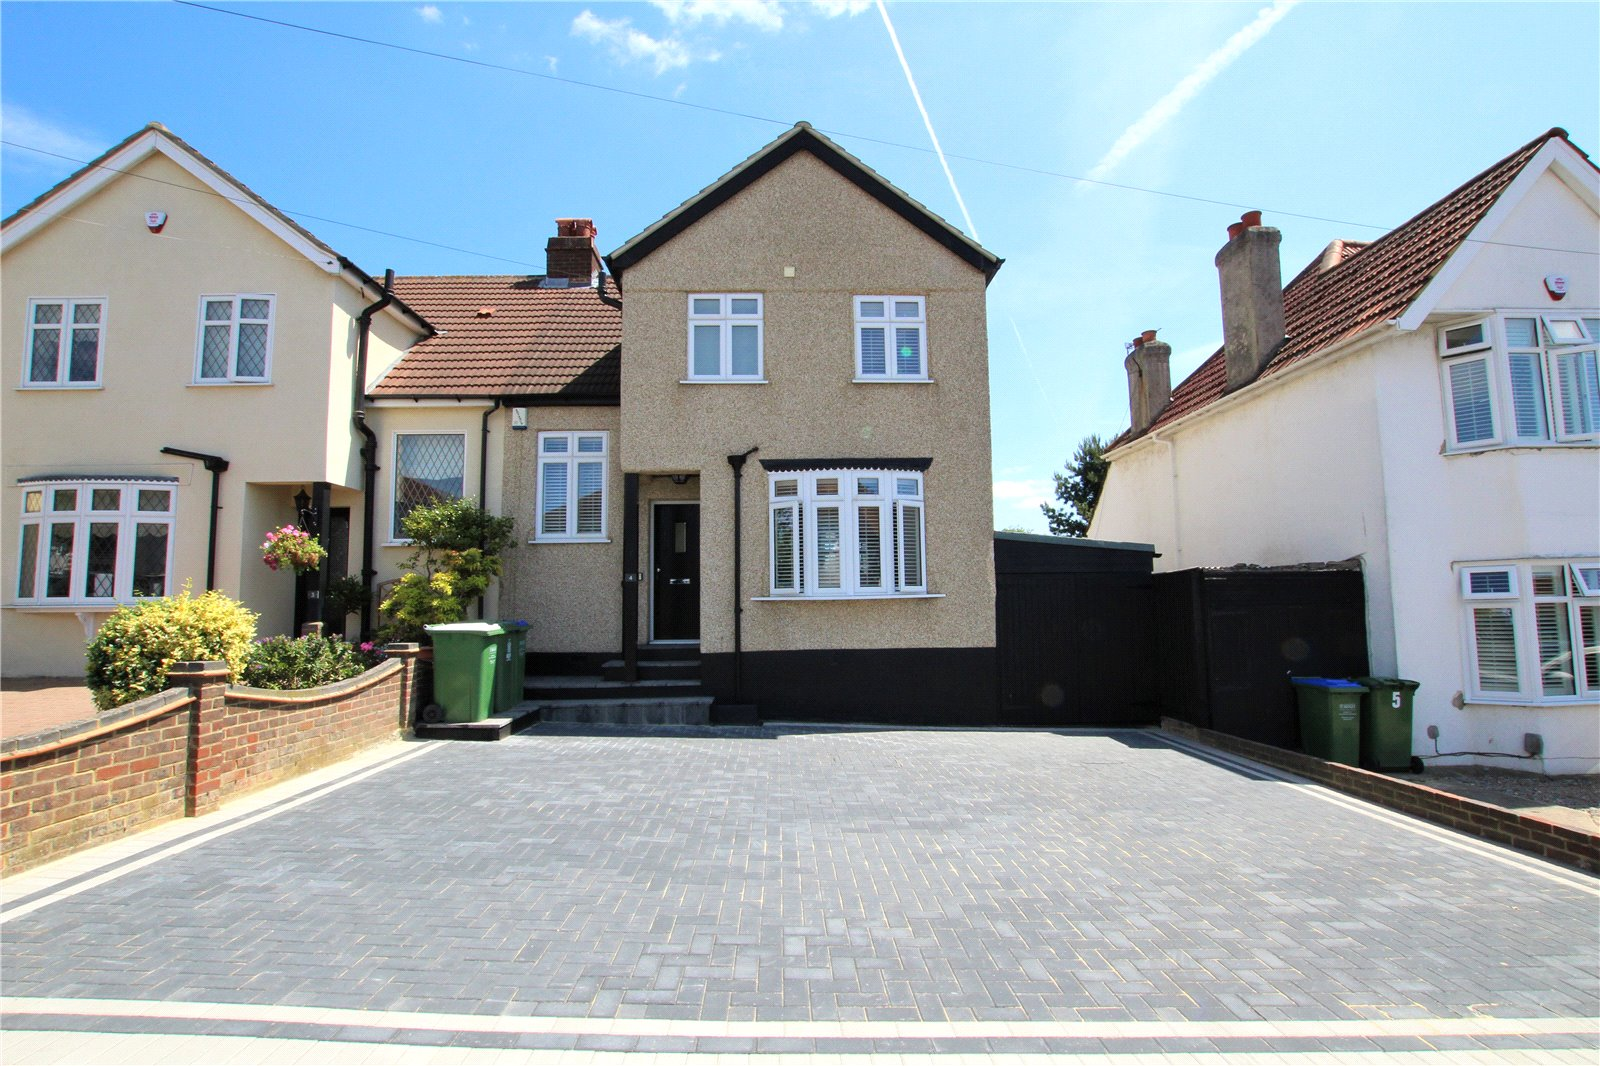 Rochester Close, Blackfen, Kent, DA15